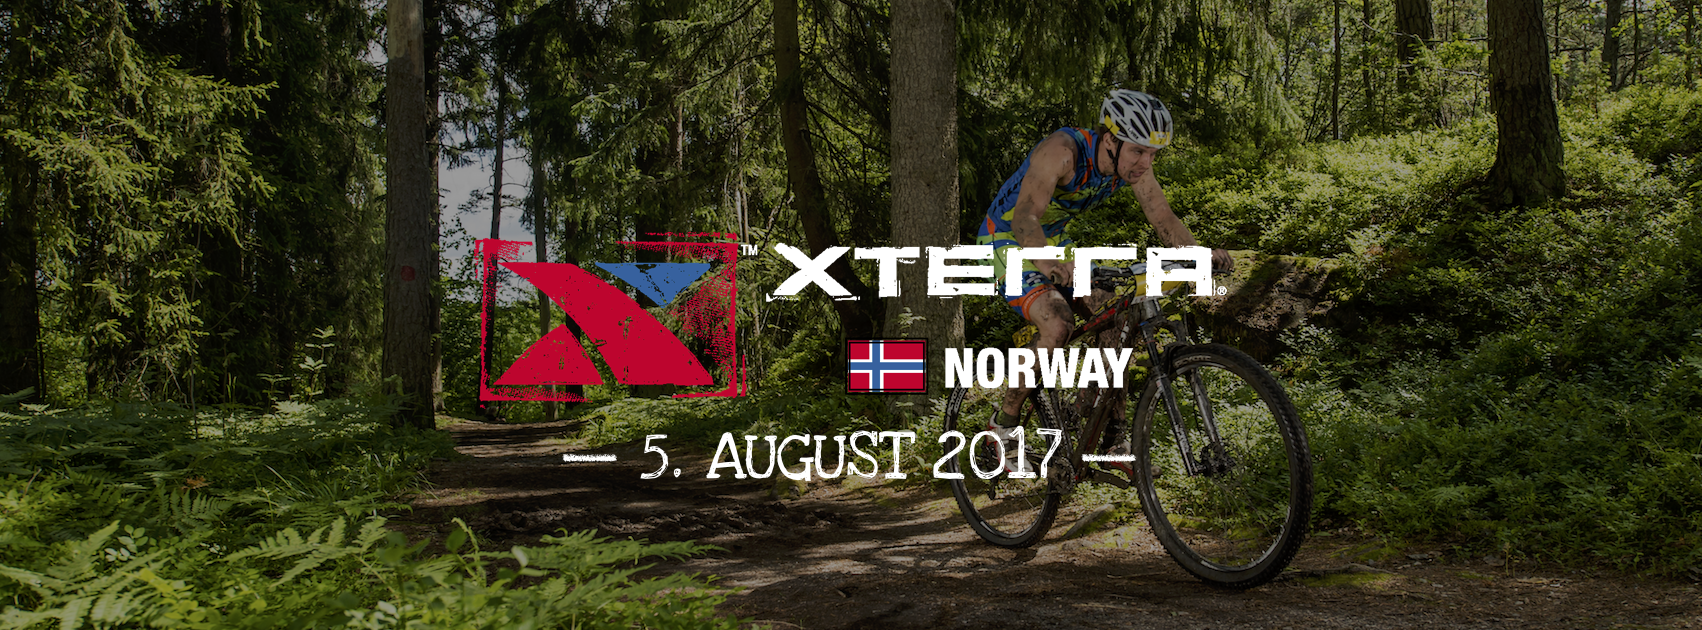 XTERRA Norway 2017